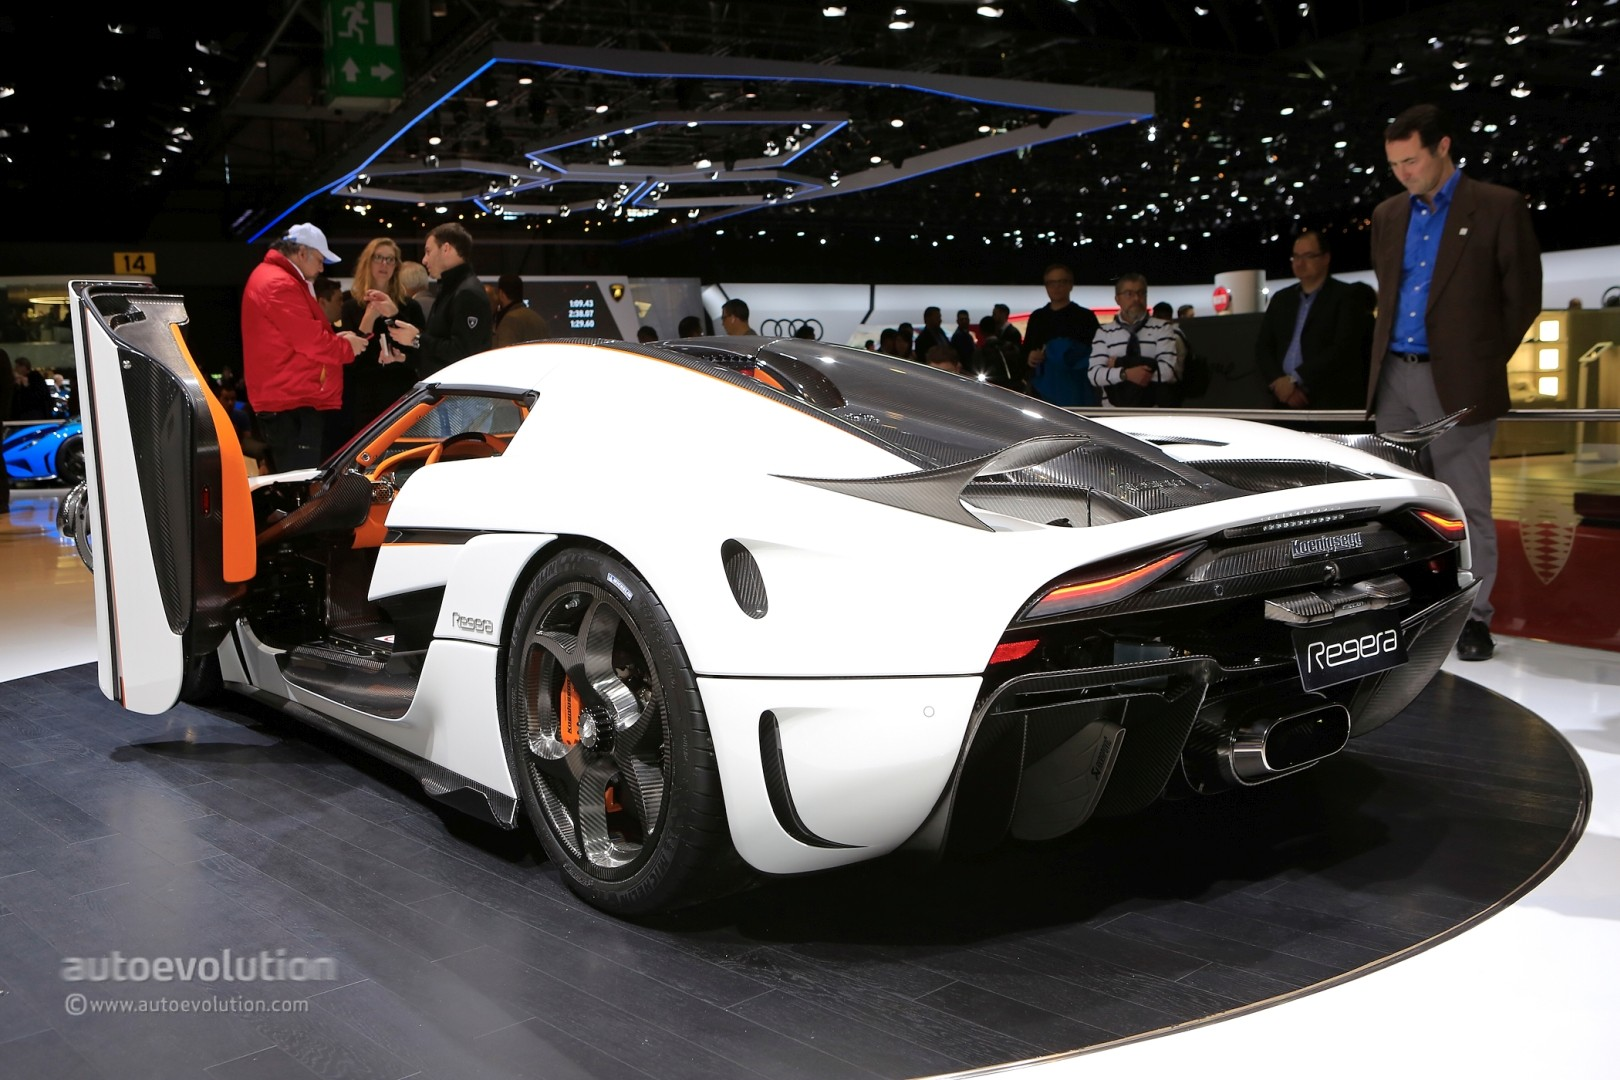 Koenigsegg Regera 2018 >> Koenigsegg Confirms Agera RS Replacement for 2019 Geneva, Displays Regeras Now - autoevolution